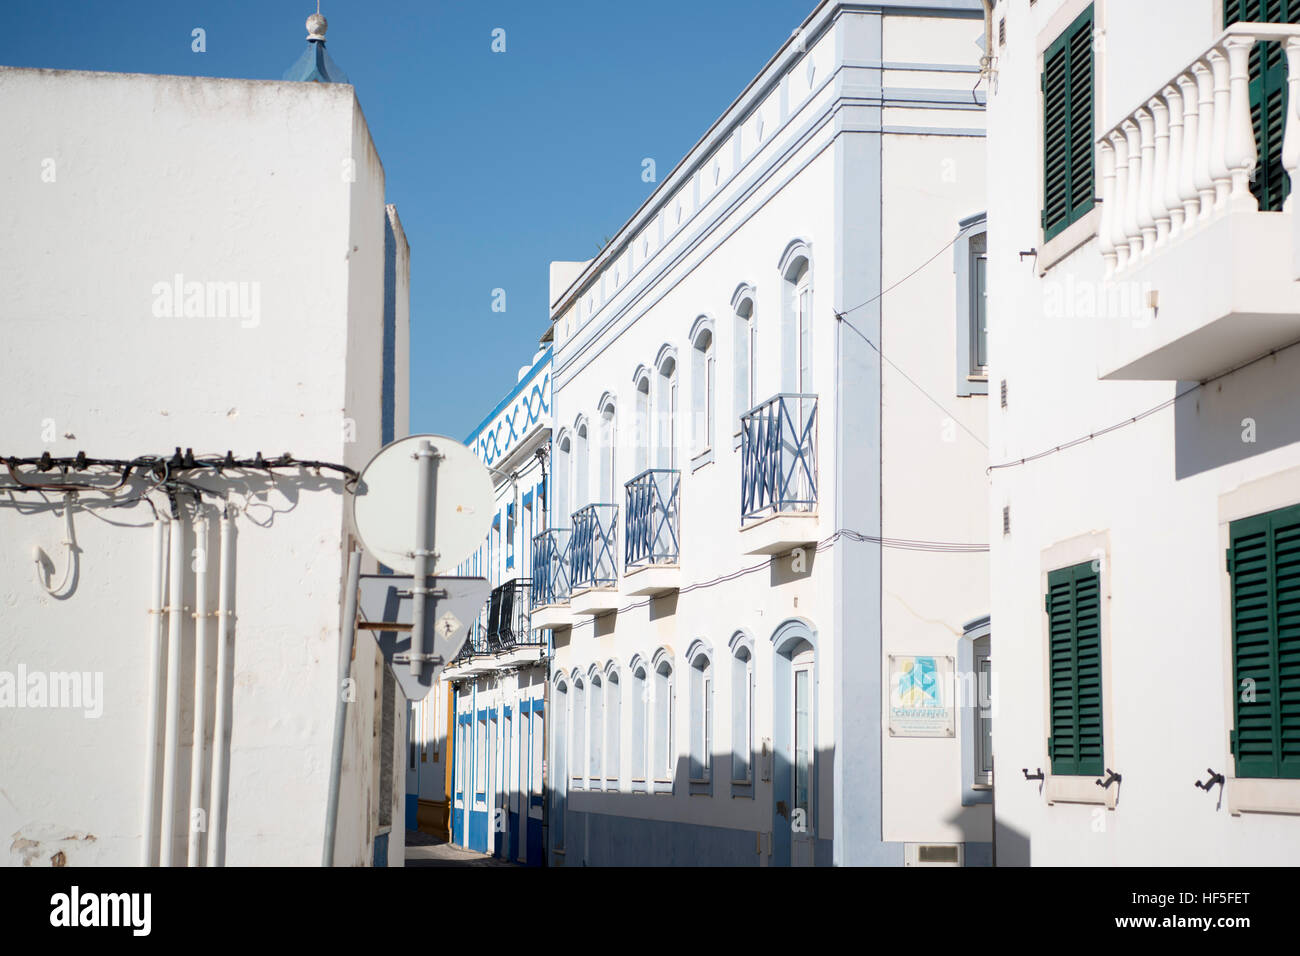 the town of Santa Luzia in the Algarve in the south of Portugal in Europe. Stock Photo